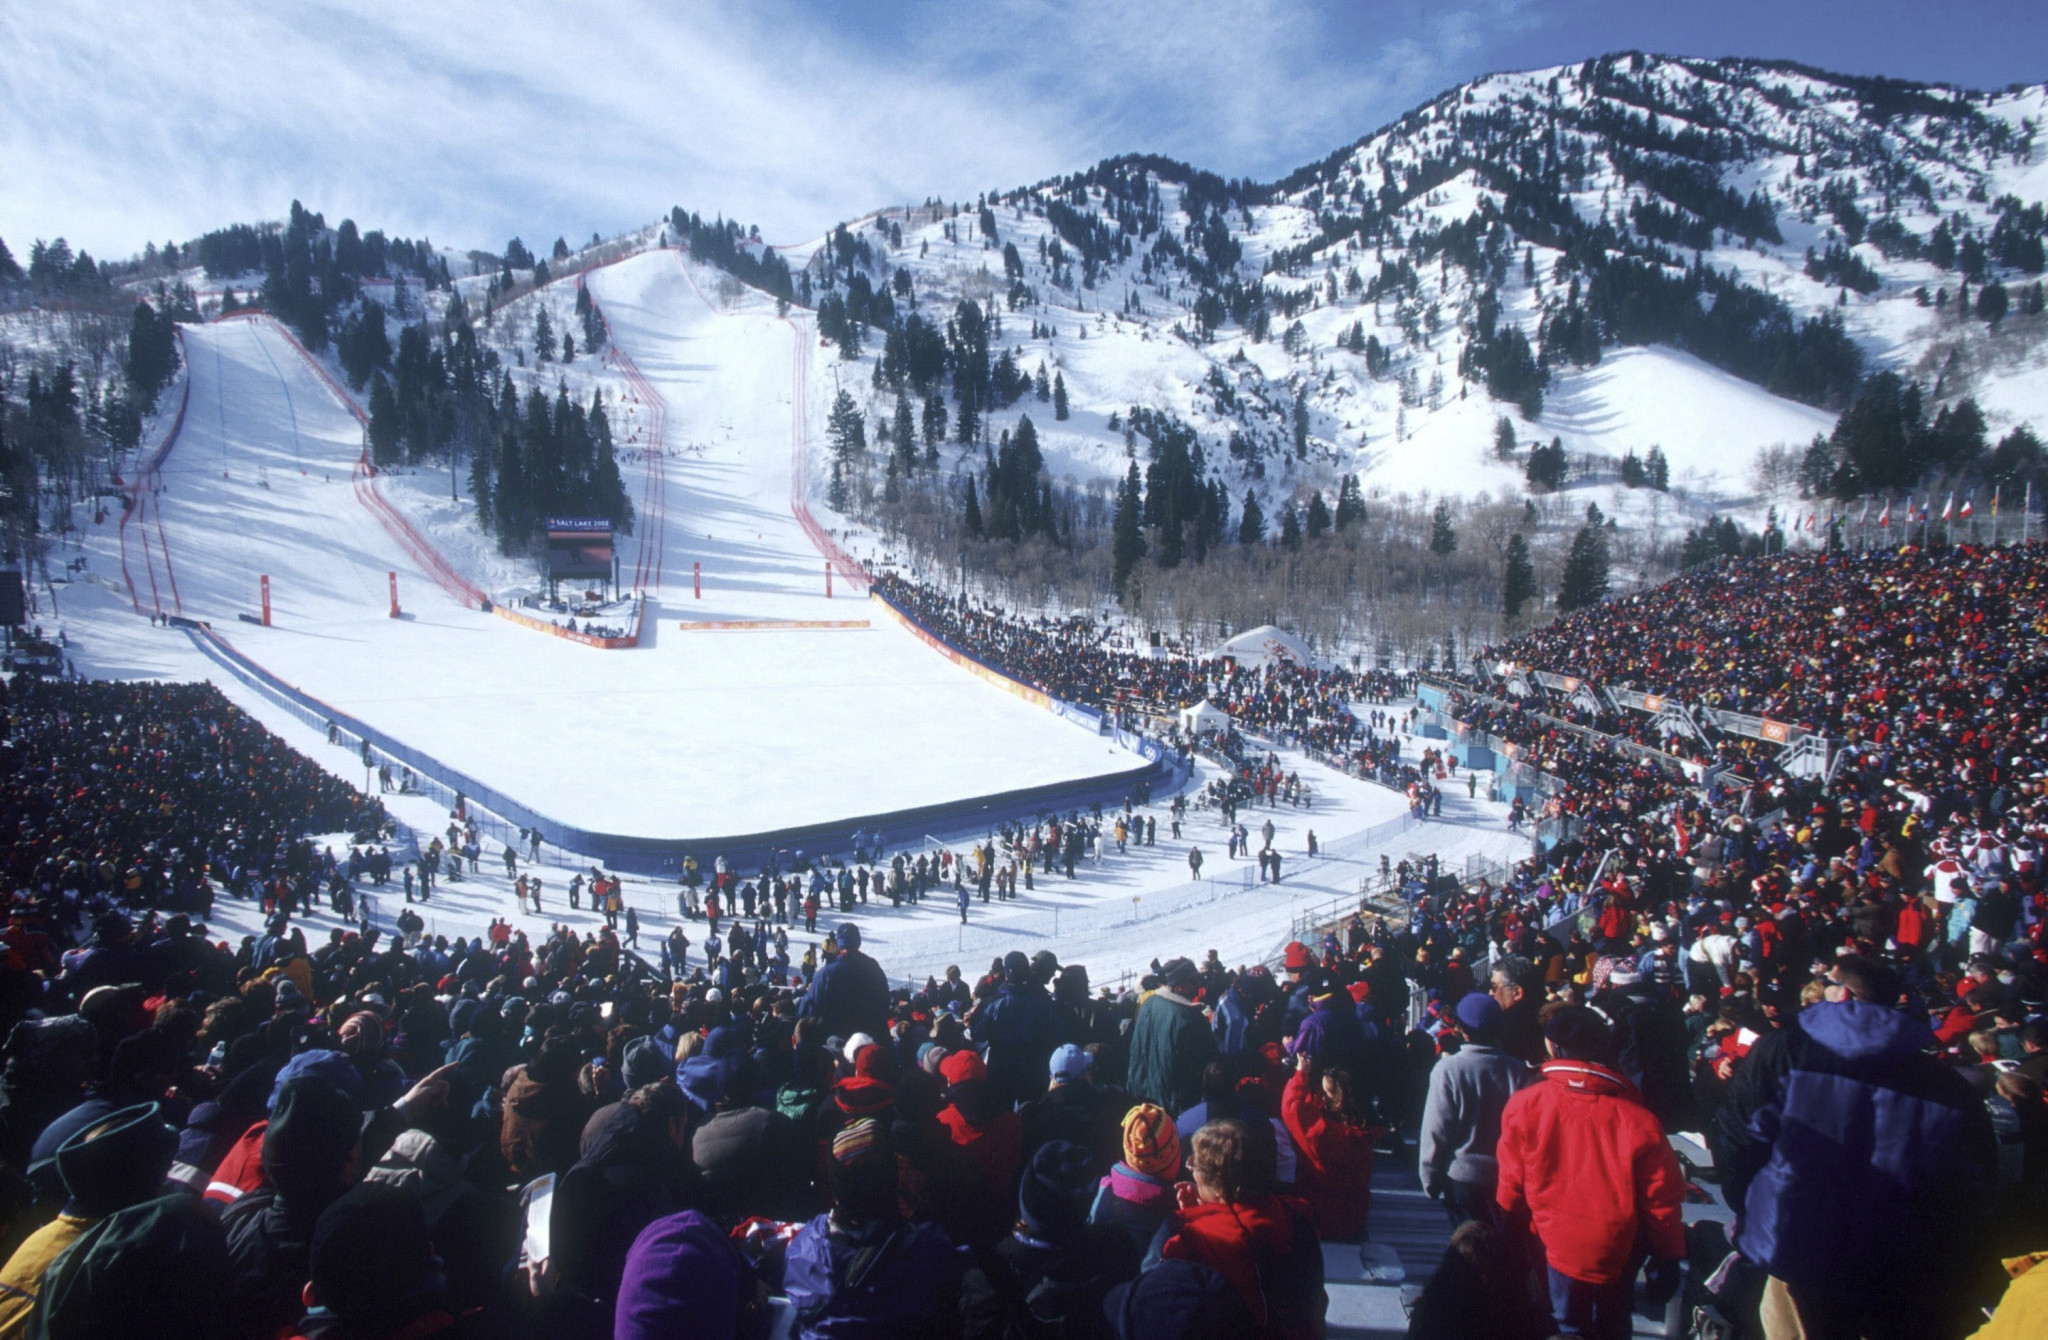 Salt Lake City selected as US candidate for potential 2030 Winter Olympic bid